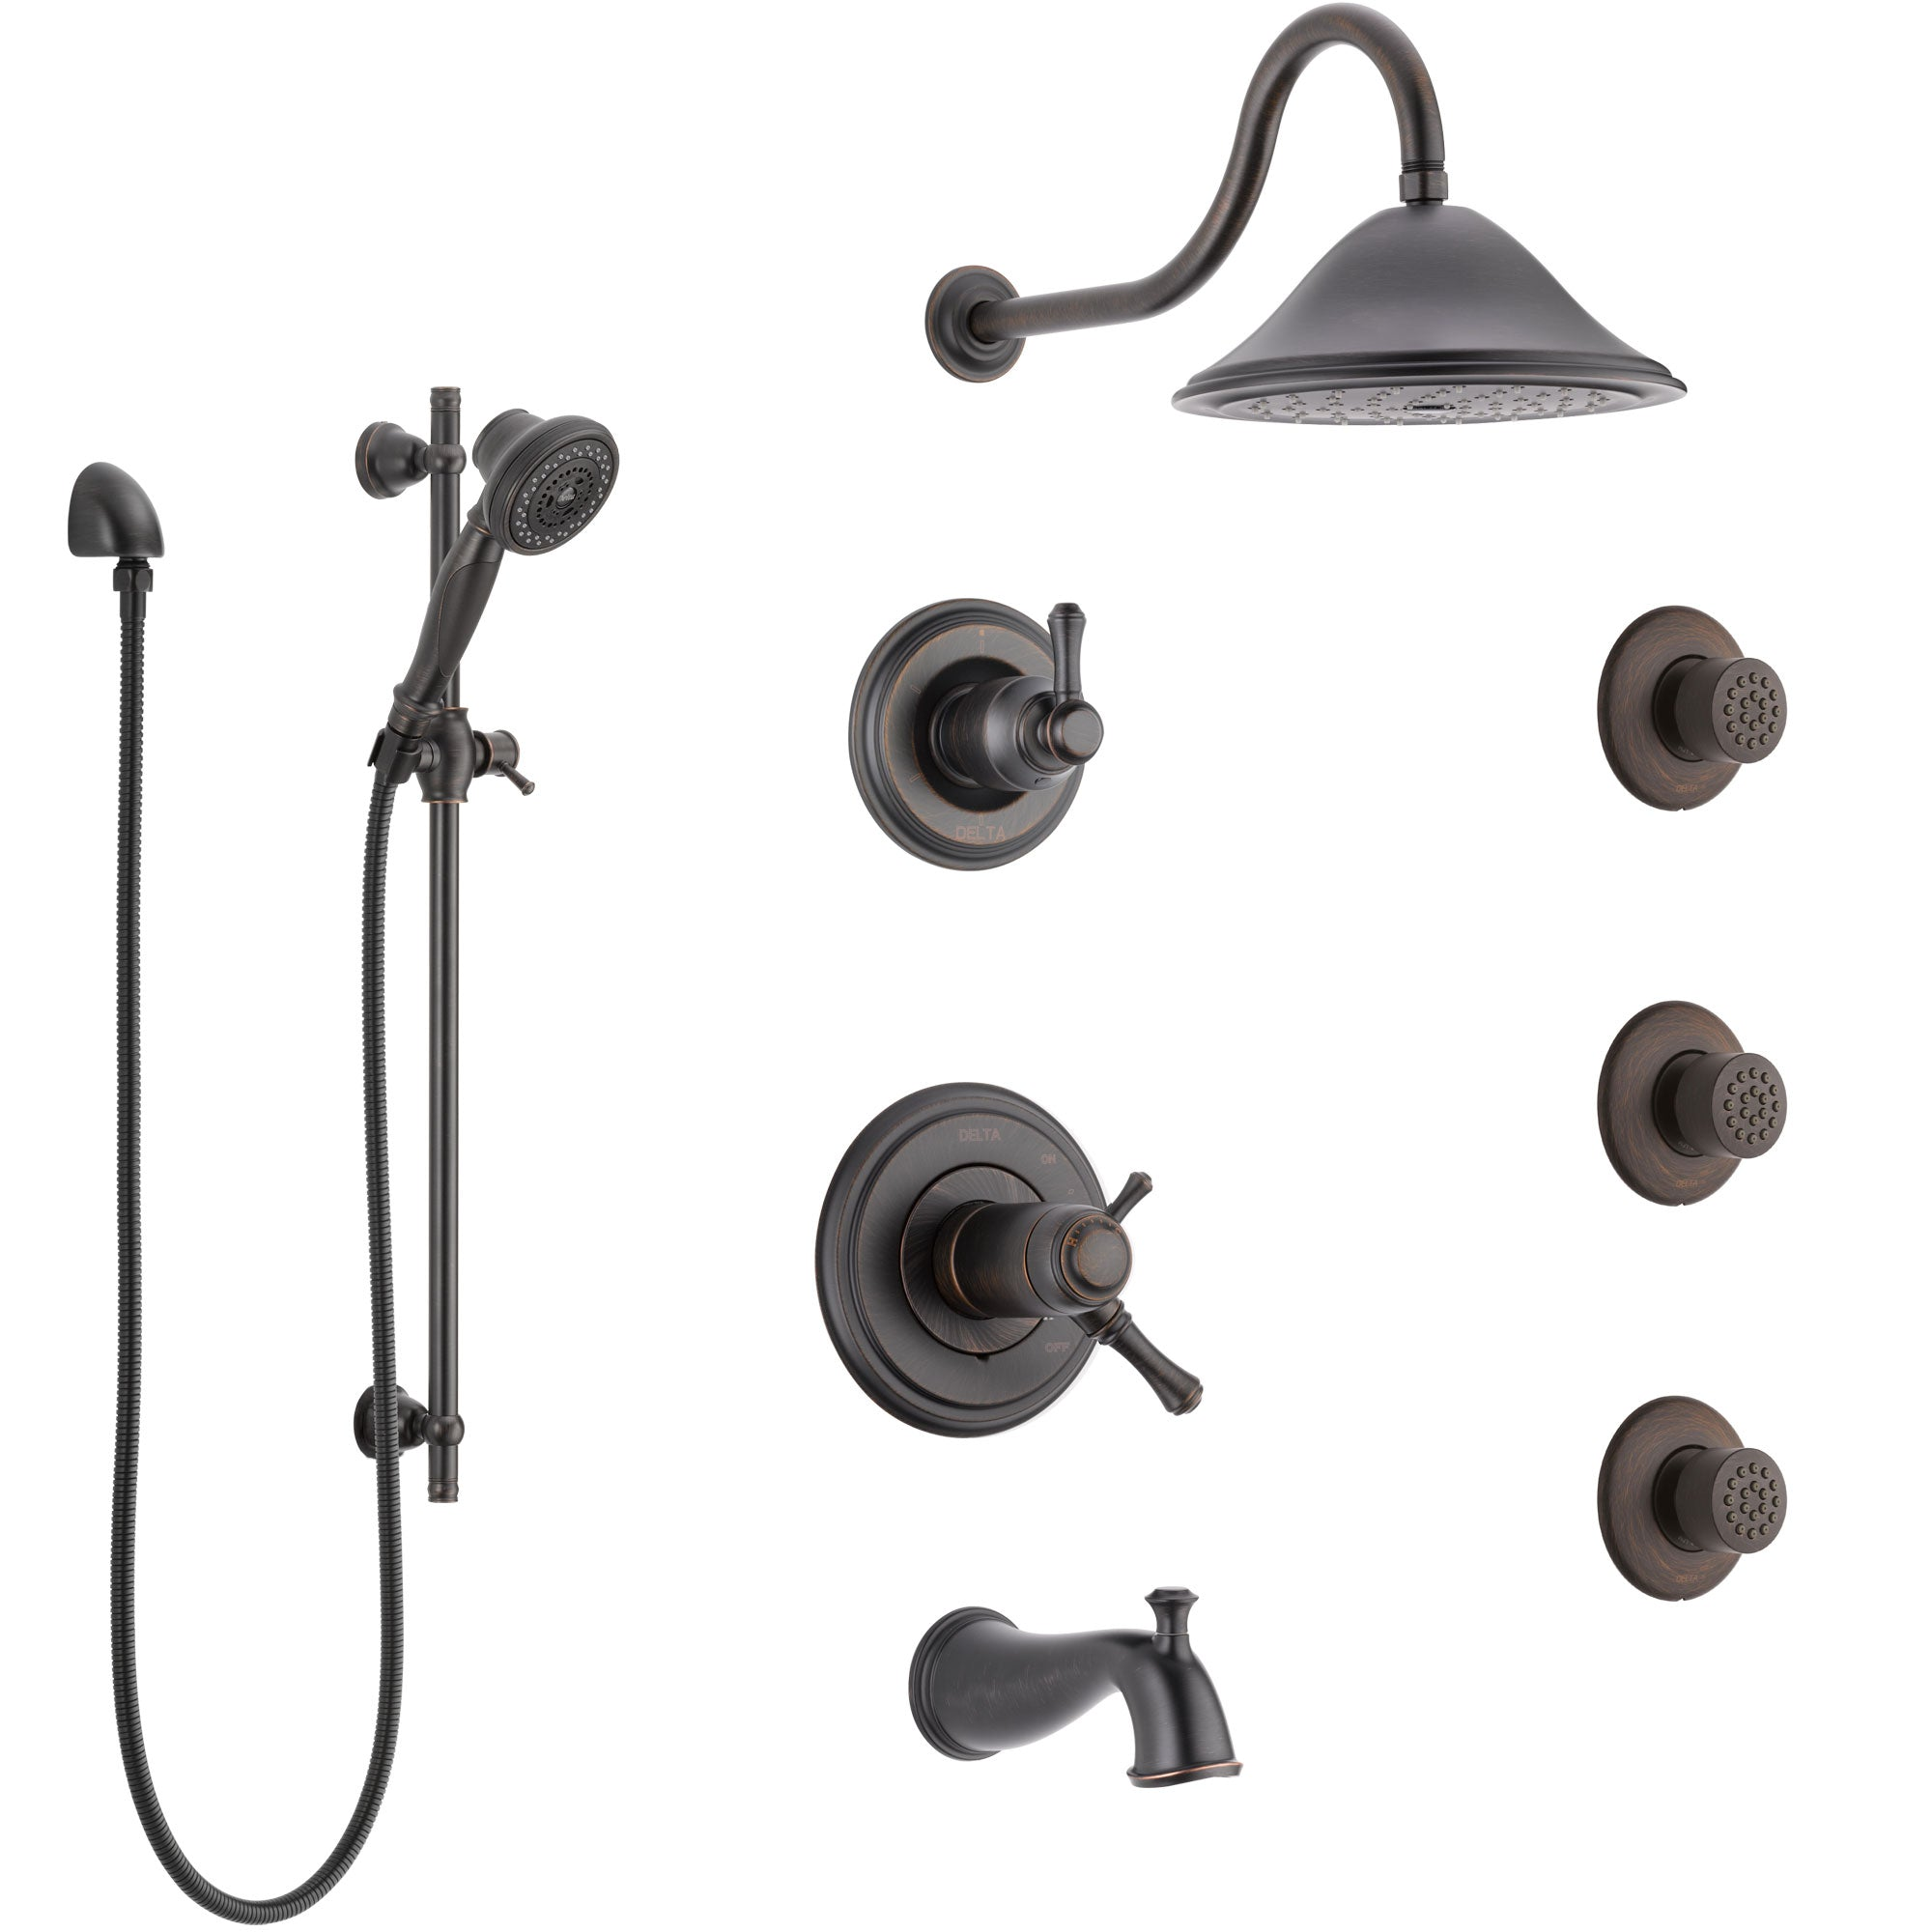 Delta Cassidy Venetian Bronze Tub and Shower System with Dual Thermostatic Control, Diverter, Showerhead, 3 Body Sprays, and Hand Shower SS17T4971RB4